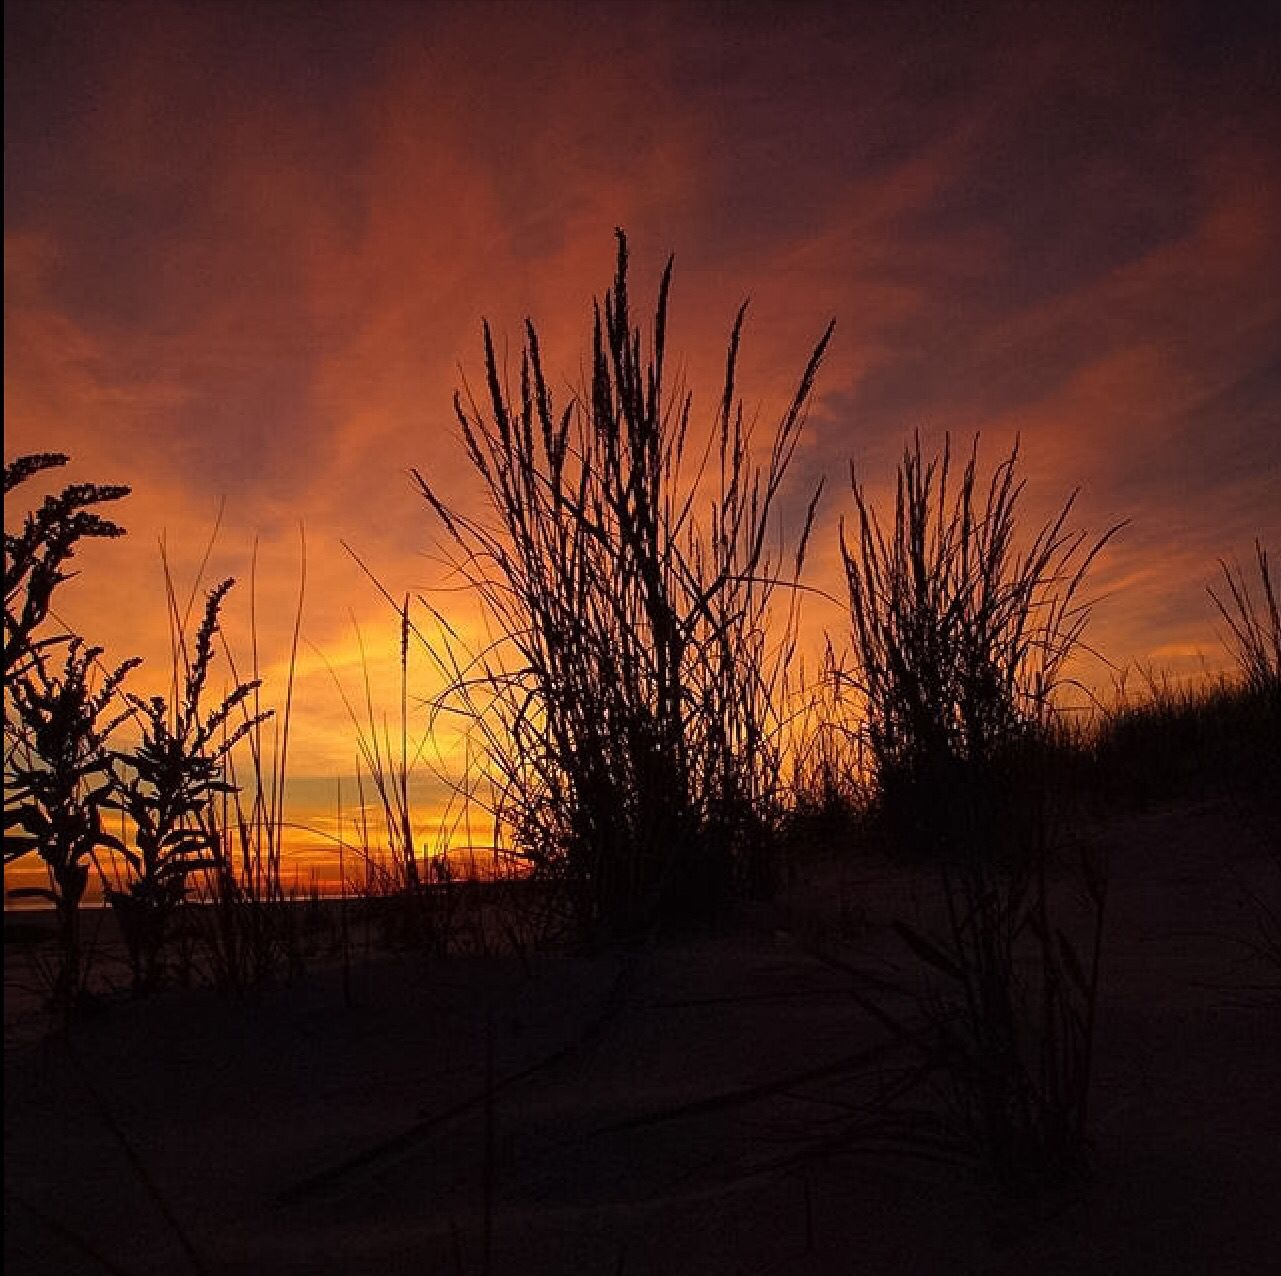 Cape May, NJ by Andy Steen